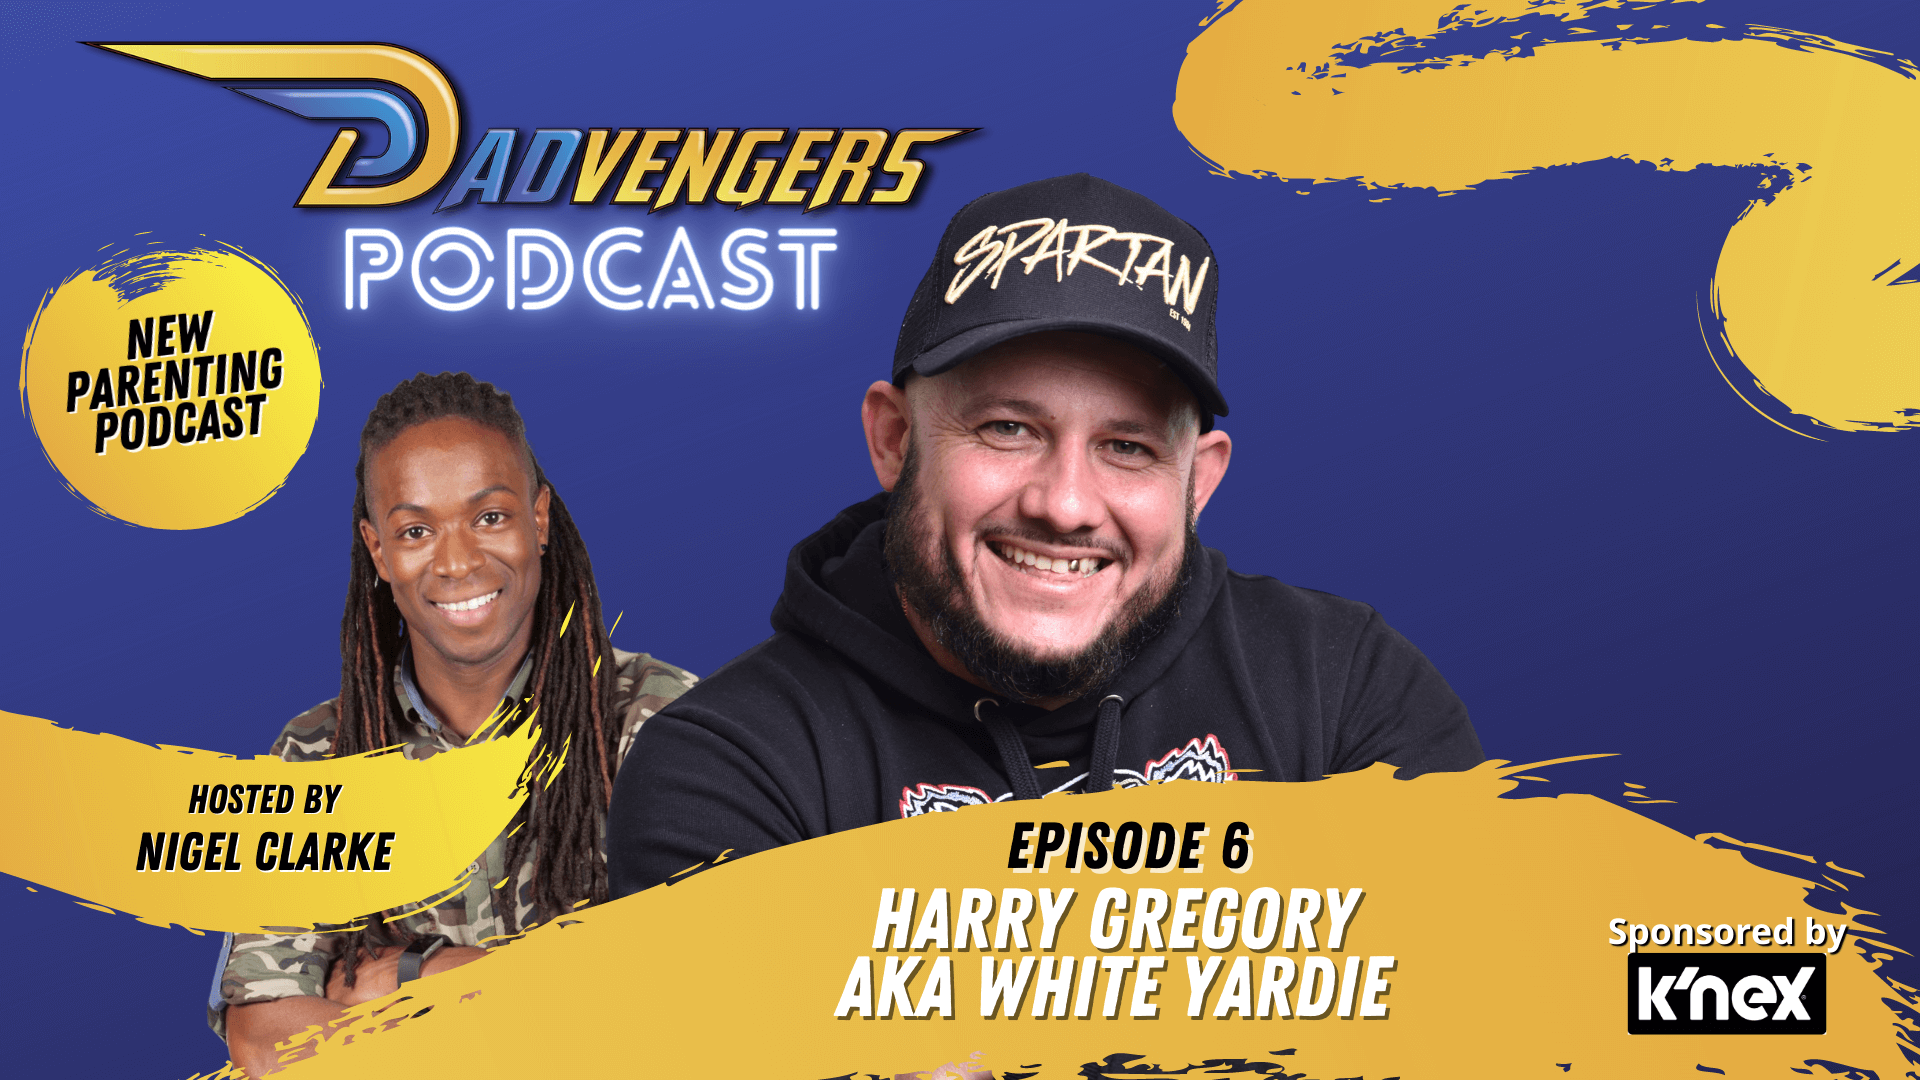 Dadvengers Podcast Episode 6 - Harry Gregory aka White Yardie